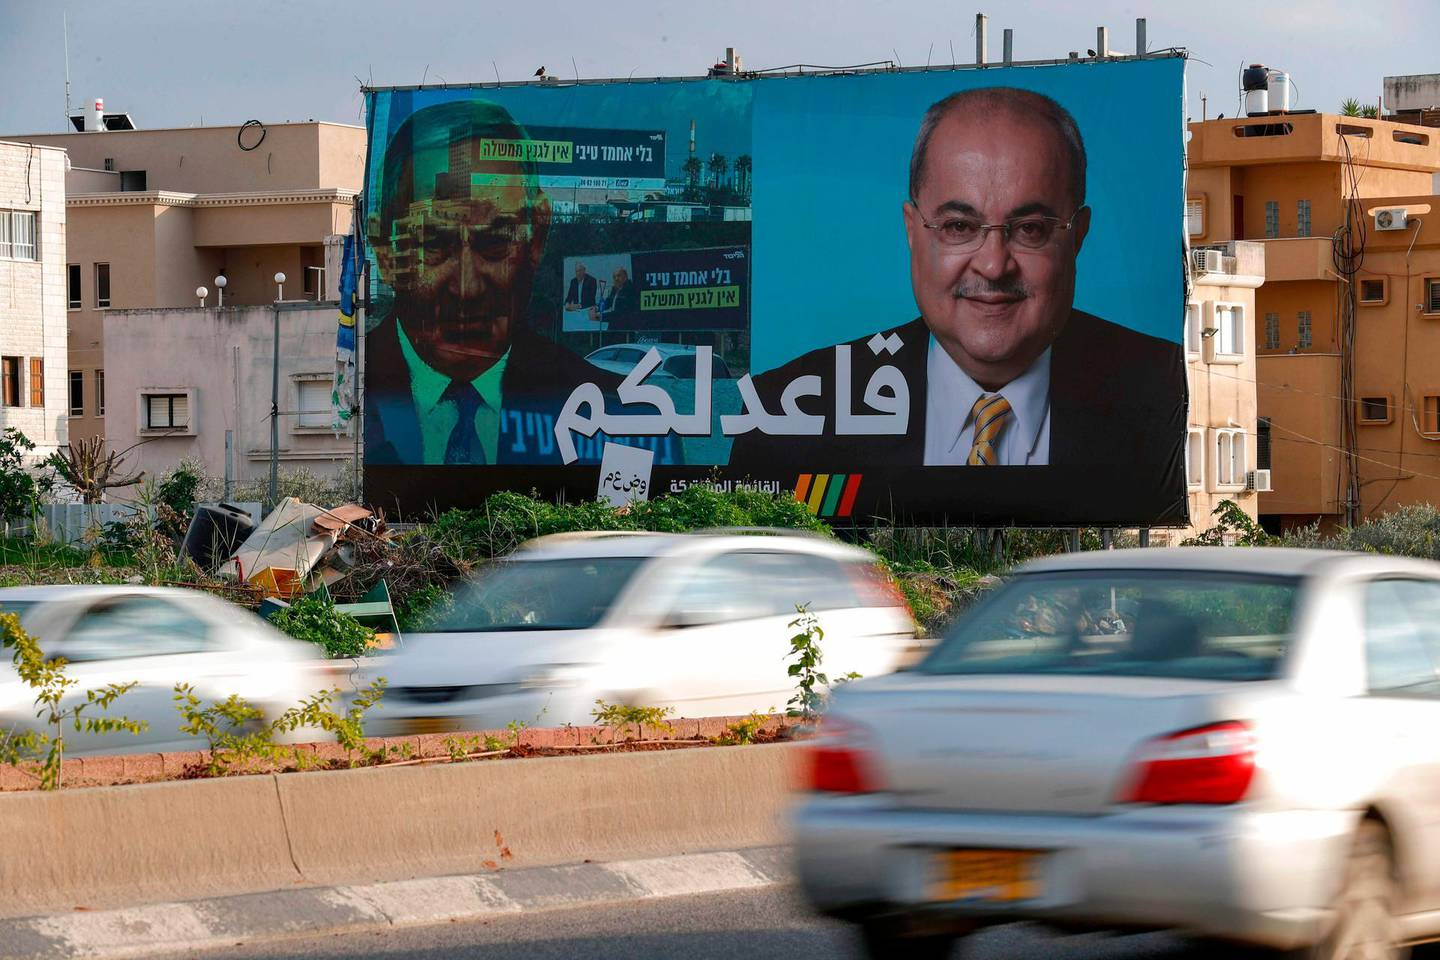 """A picture taken on February 21, 2020, shows a portrait of Arab Israeli member of the Joint List Ahmad Tibi on a campaign poster, with the Arabic writing which reads """"i am staying seated"""" in the northern Israeli City of Tayyiba.  / AFP / AHMAD GHARABLI"""